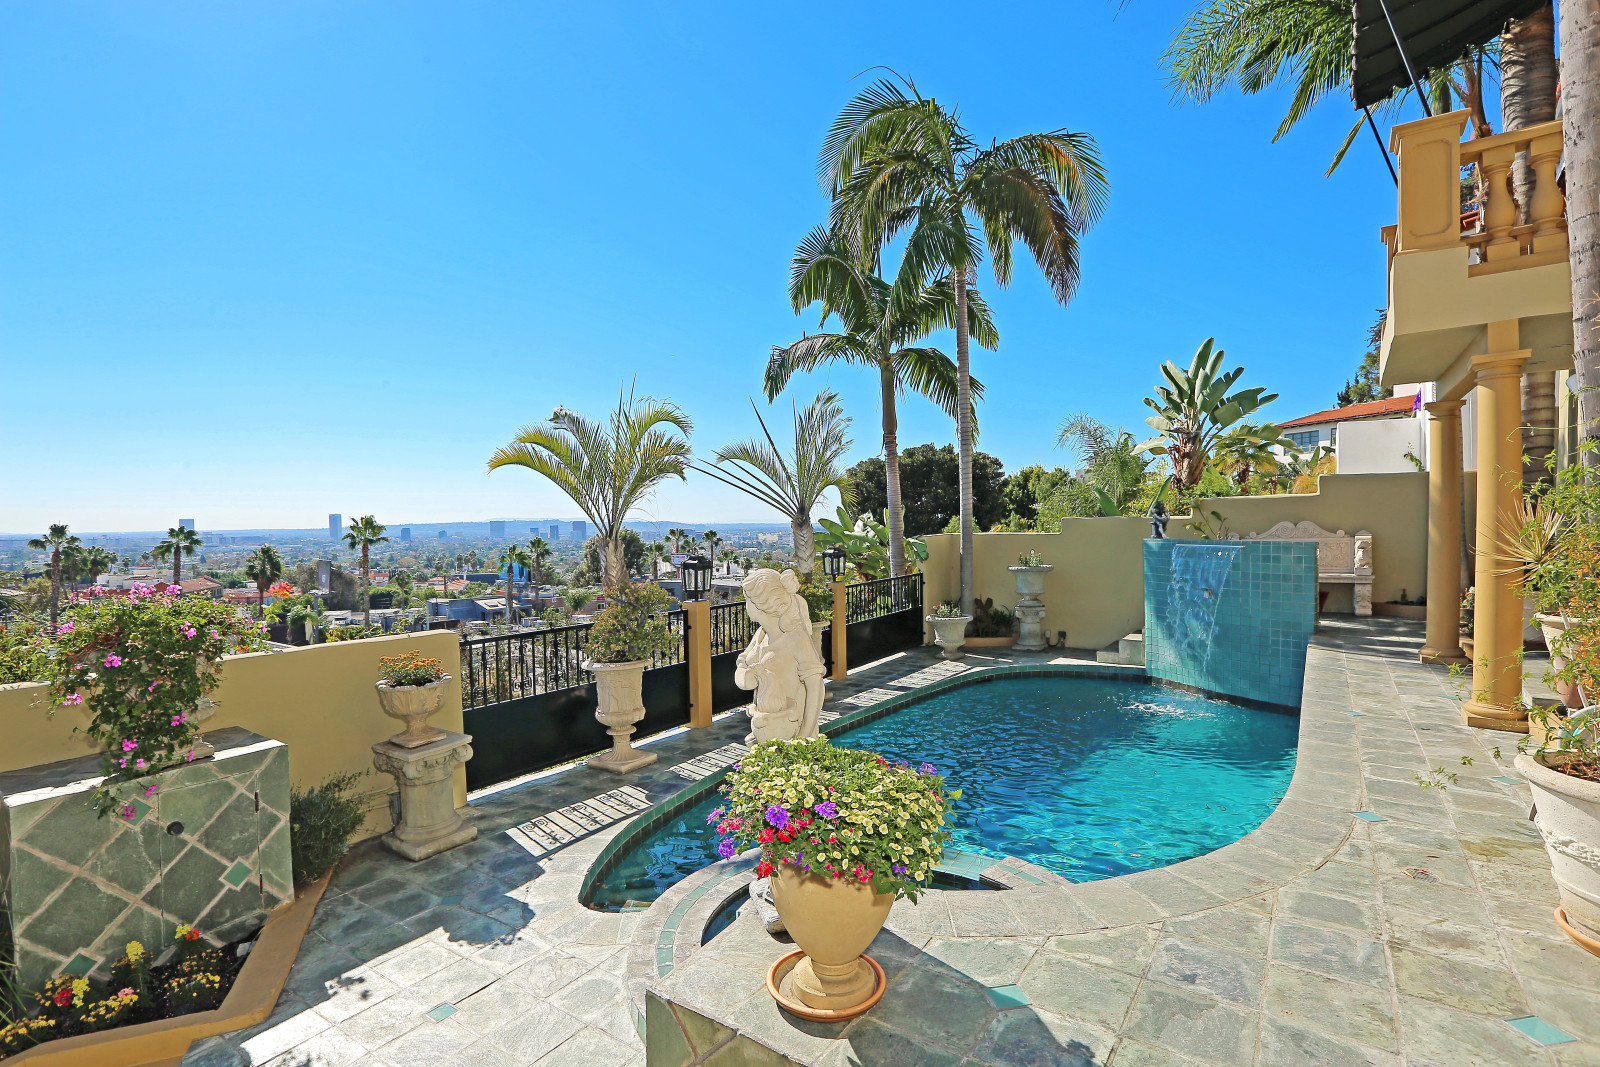 House Of The Week 1920s Villa Overlooking The Sunset Strip